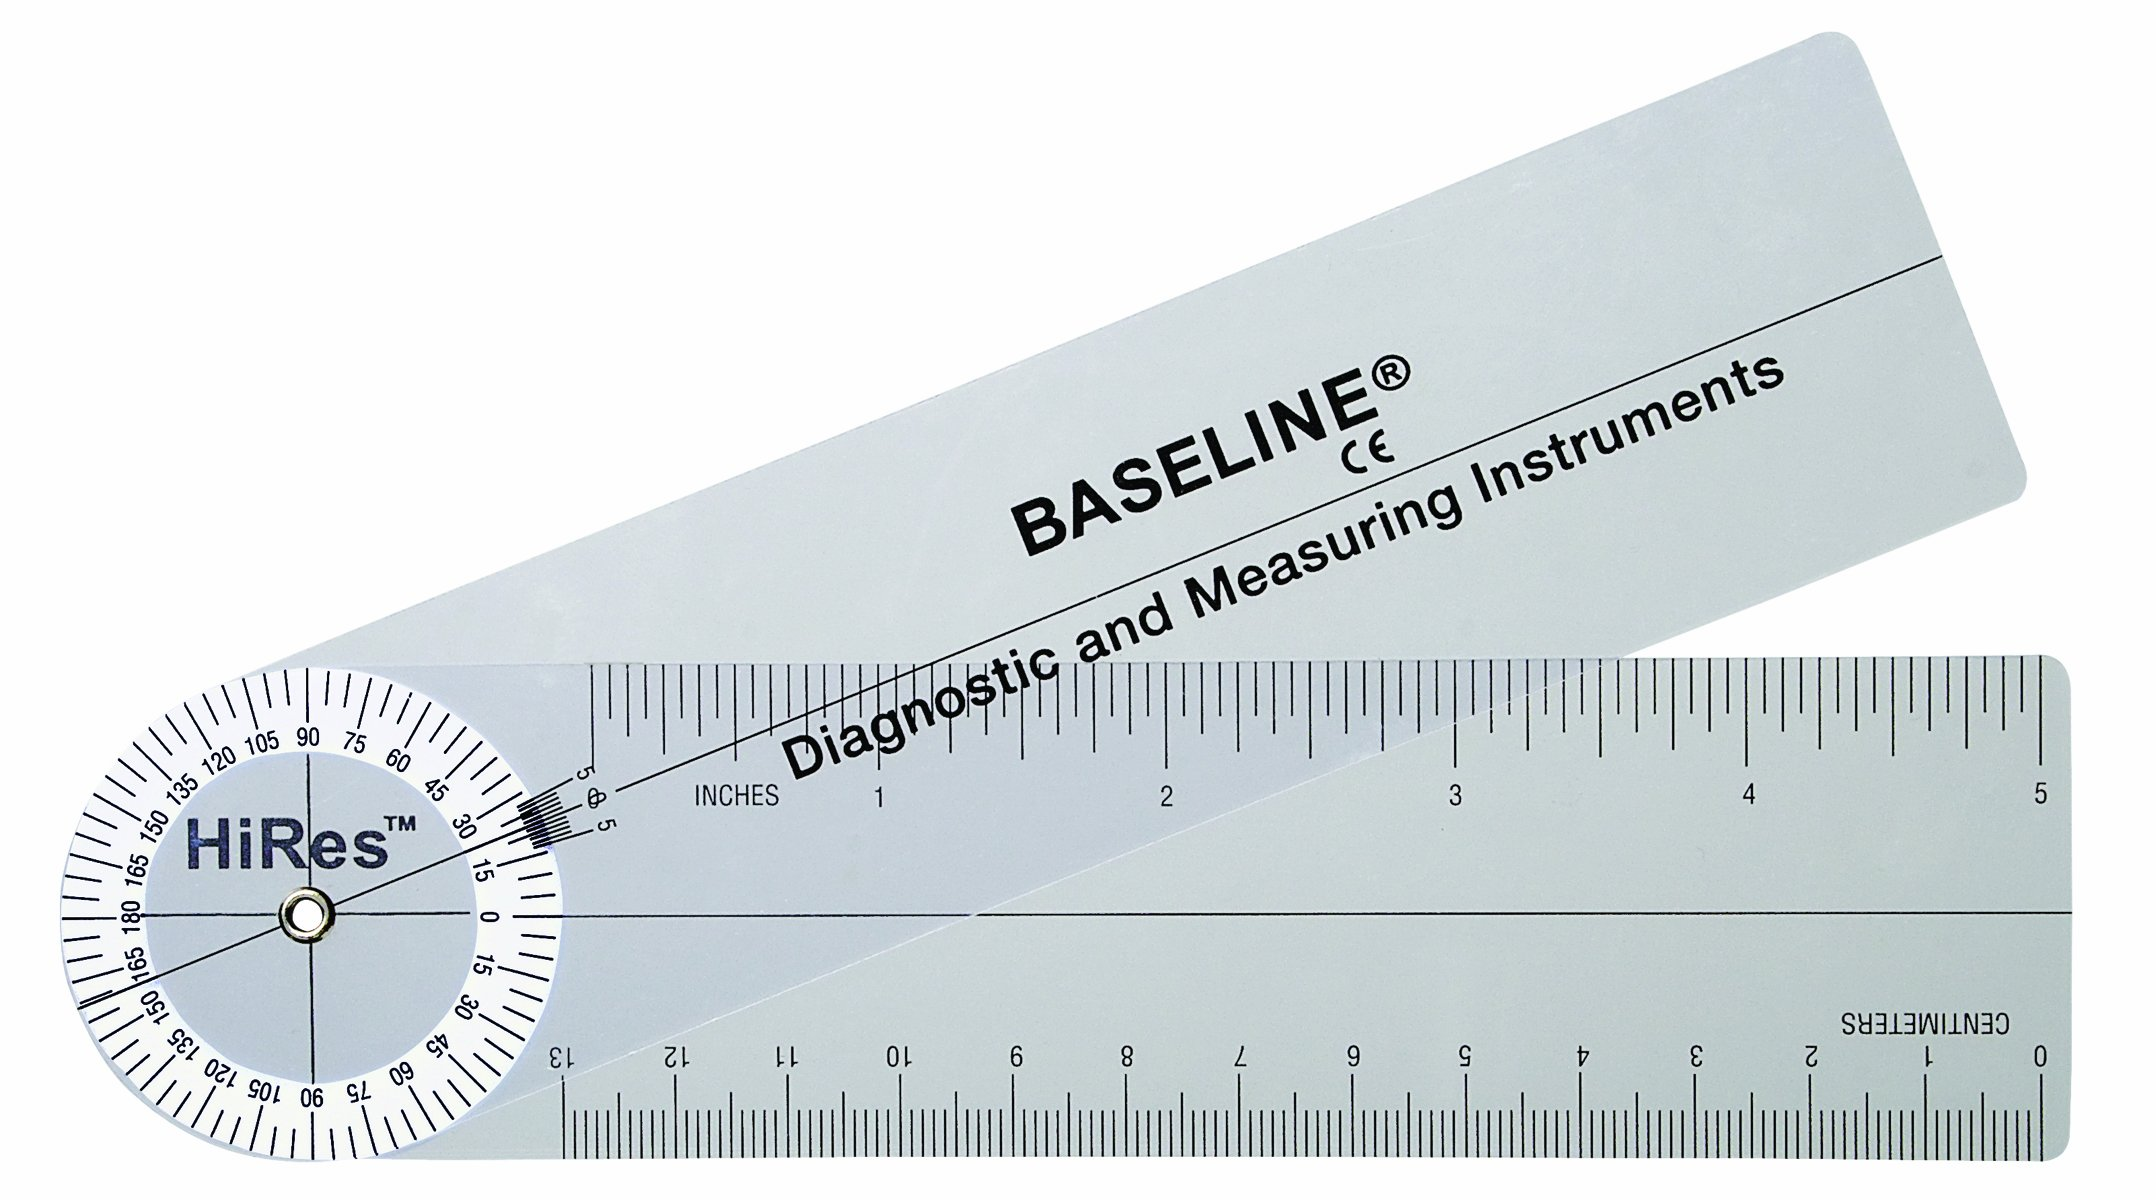 Baseline 12-1006HR-25 Plastic Goniometer Rulongmeter Style Hires 360 Degree Head 7 Inch Arms 25-Pack